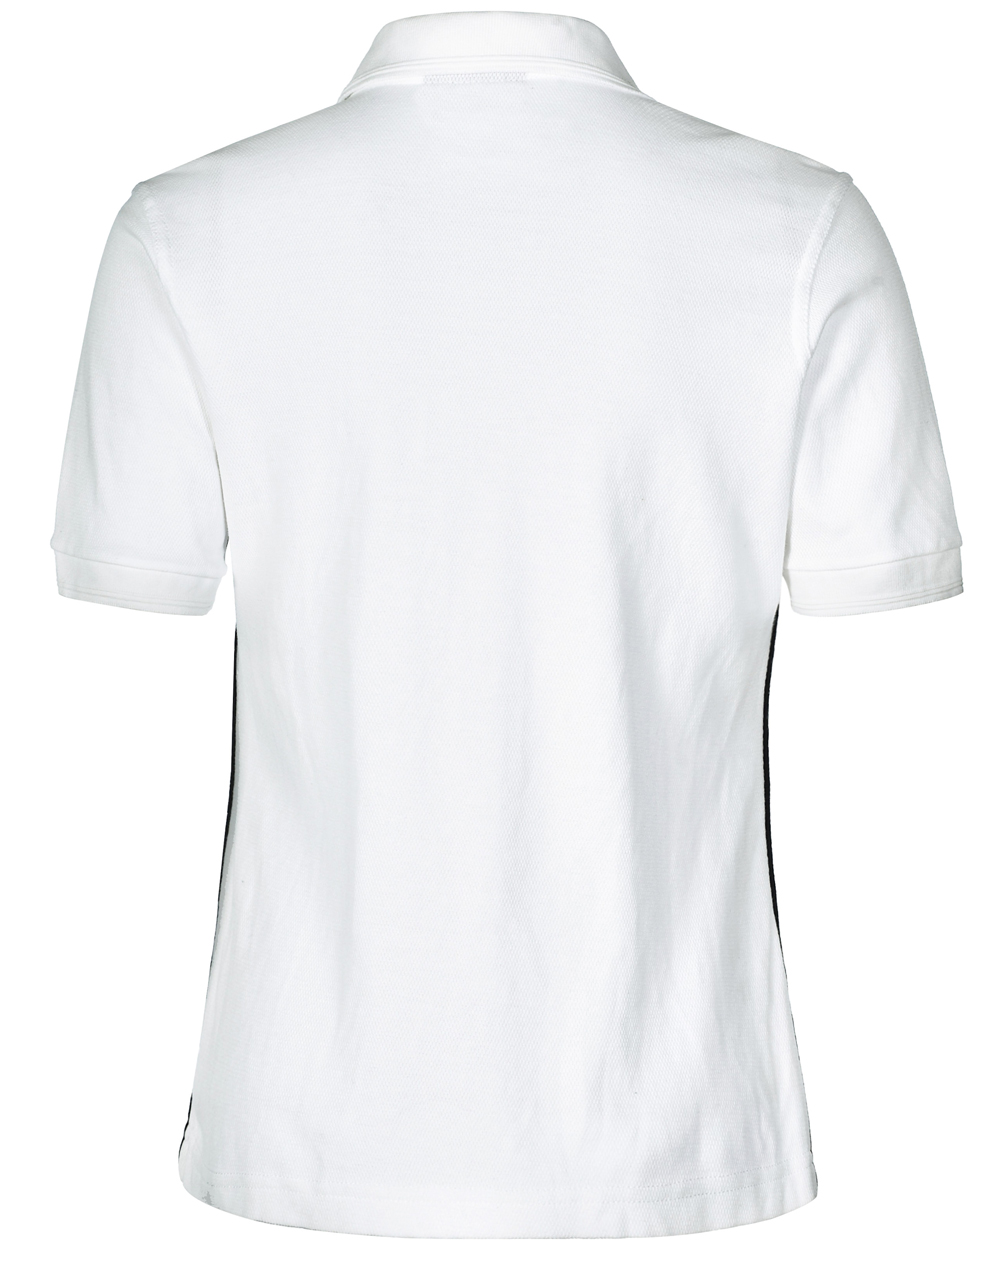 https://s3-ap-southeast-1.amazonaws.com/ws-imgs/POLOSHIRTS/PS26_White.Navy_Back.jpg